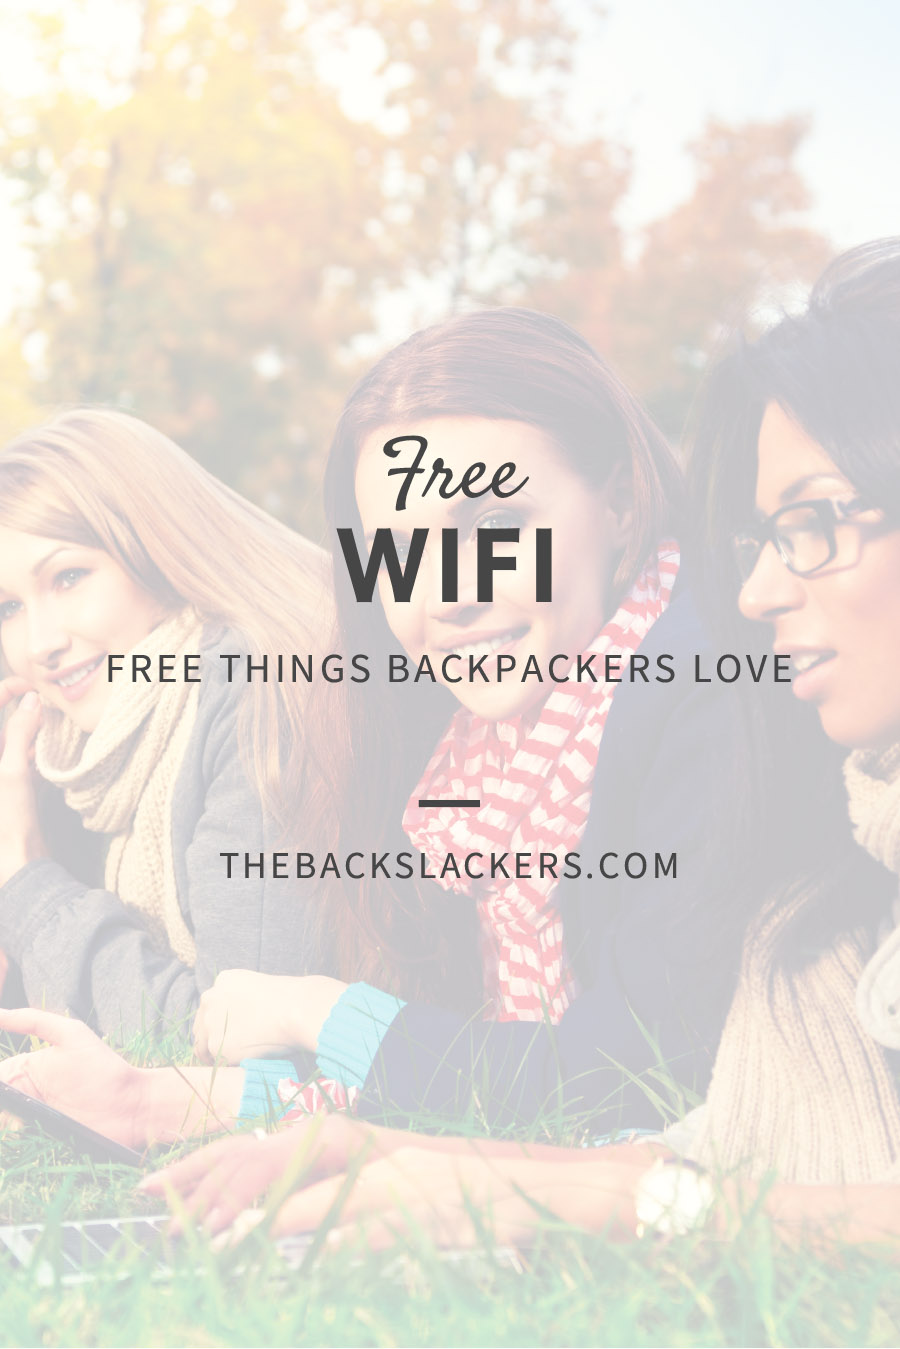 Free Things Backpackers Love - FREE WIFI